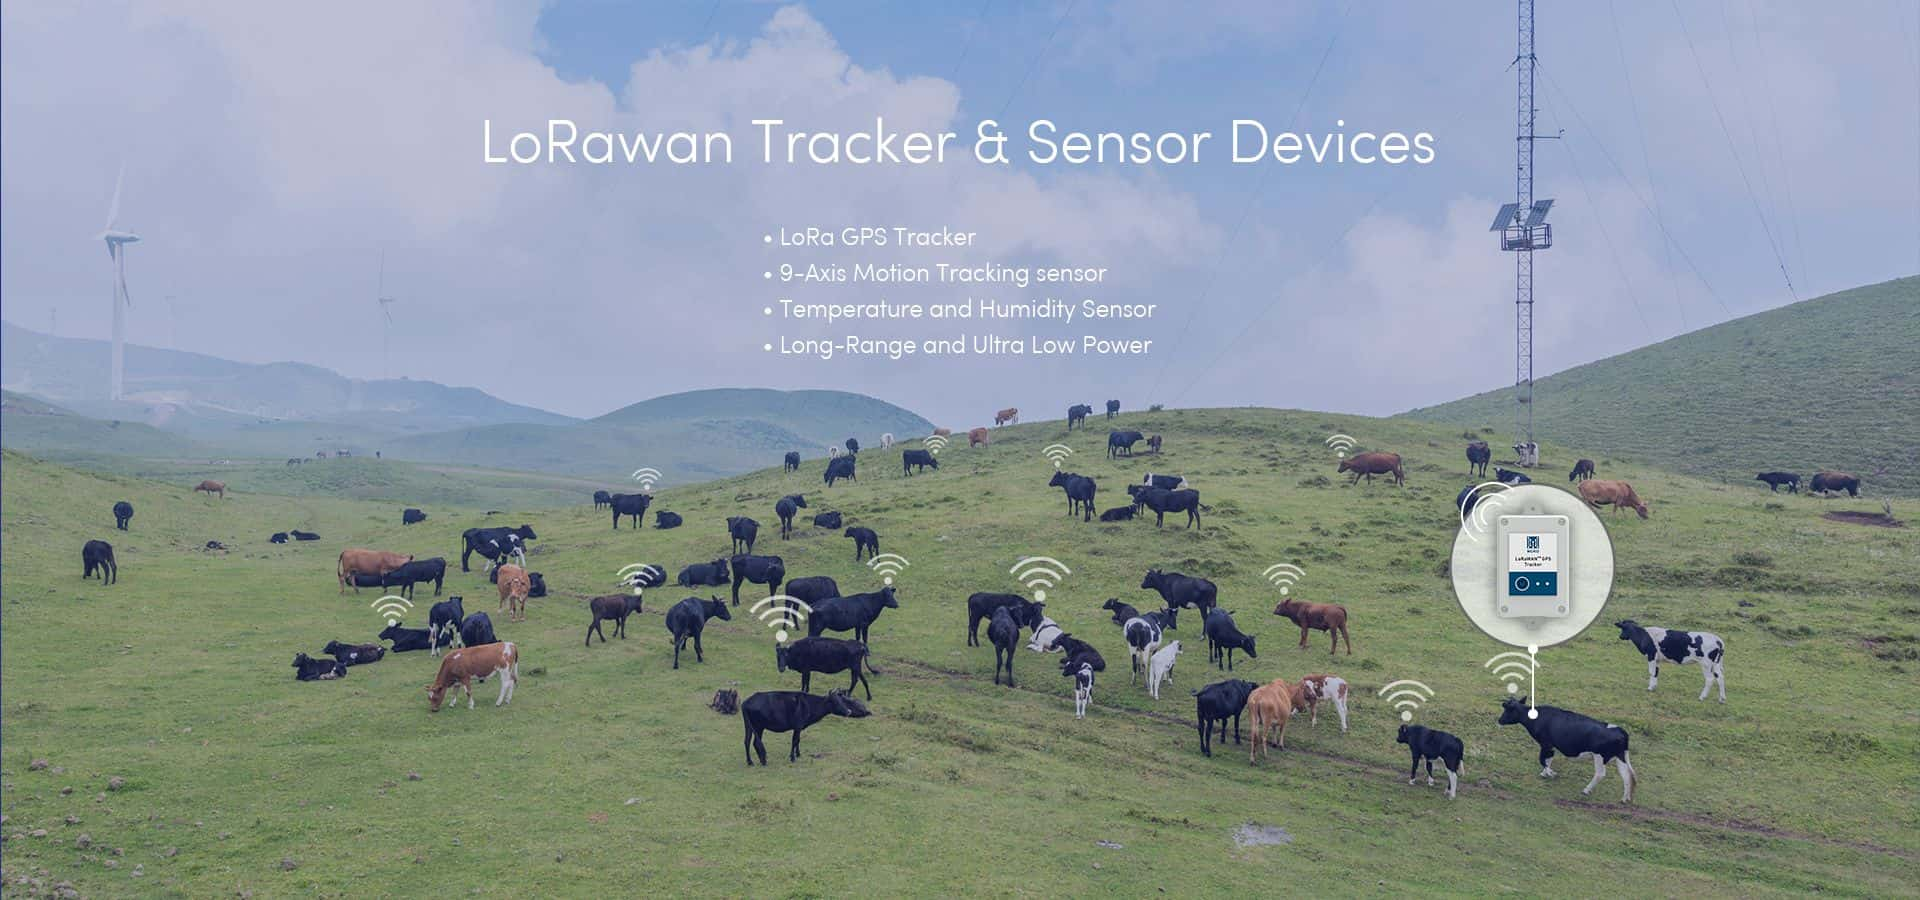 lorawan tracker and sensor devices